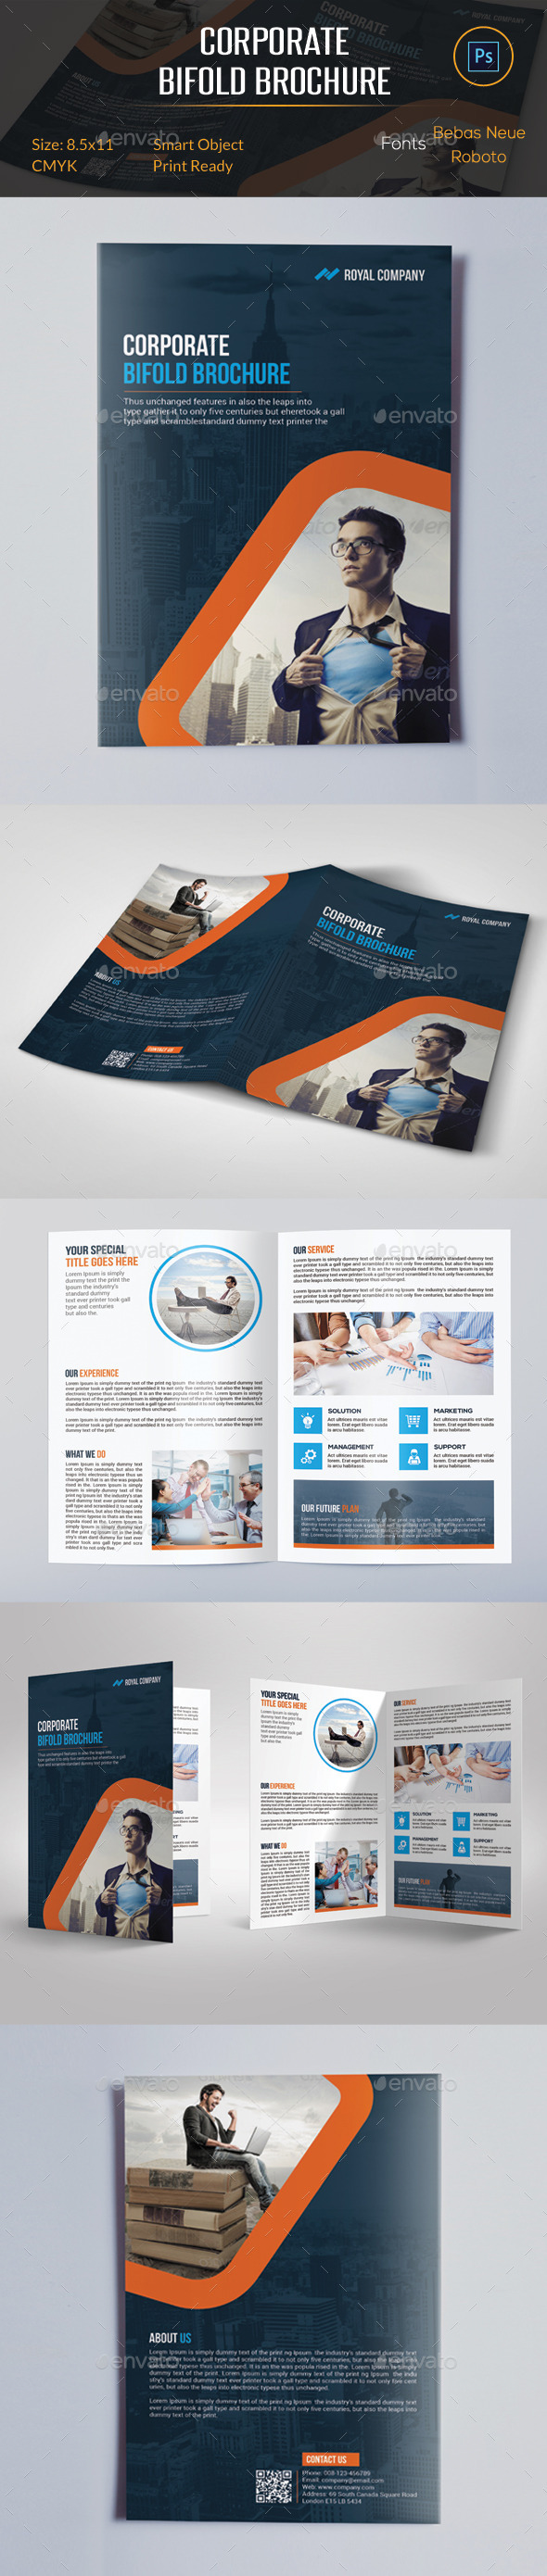 GraphicRiver Corporate Bifold Brochure 11417245